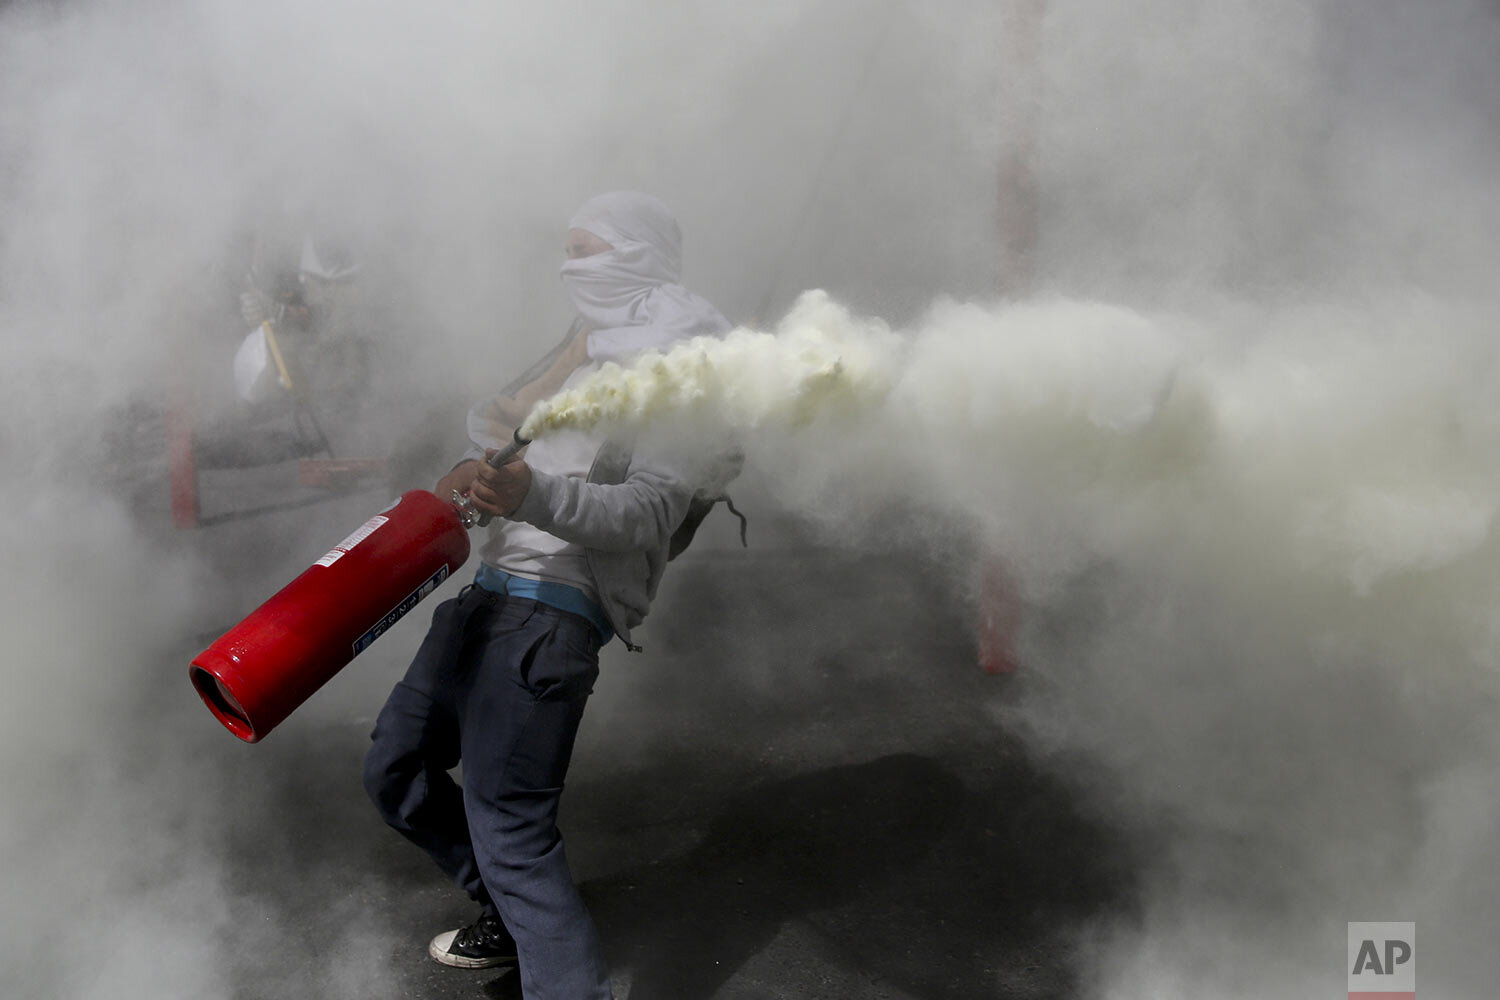 An anti-government demonstrator sprays a fire extinguisher during clashes with police in Santiago, Chile, Monday, Oct. 28, 2019. (AP Photo/Rodrigo Abd)